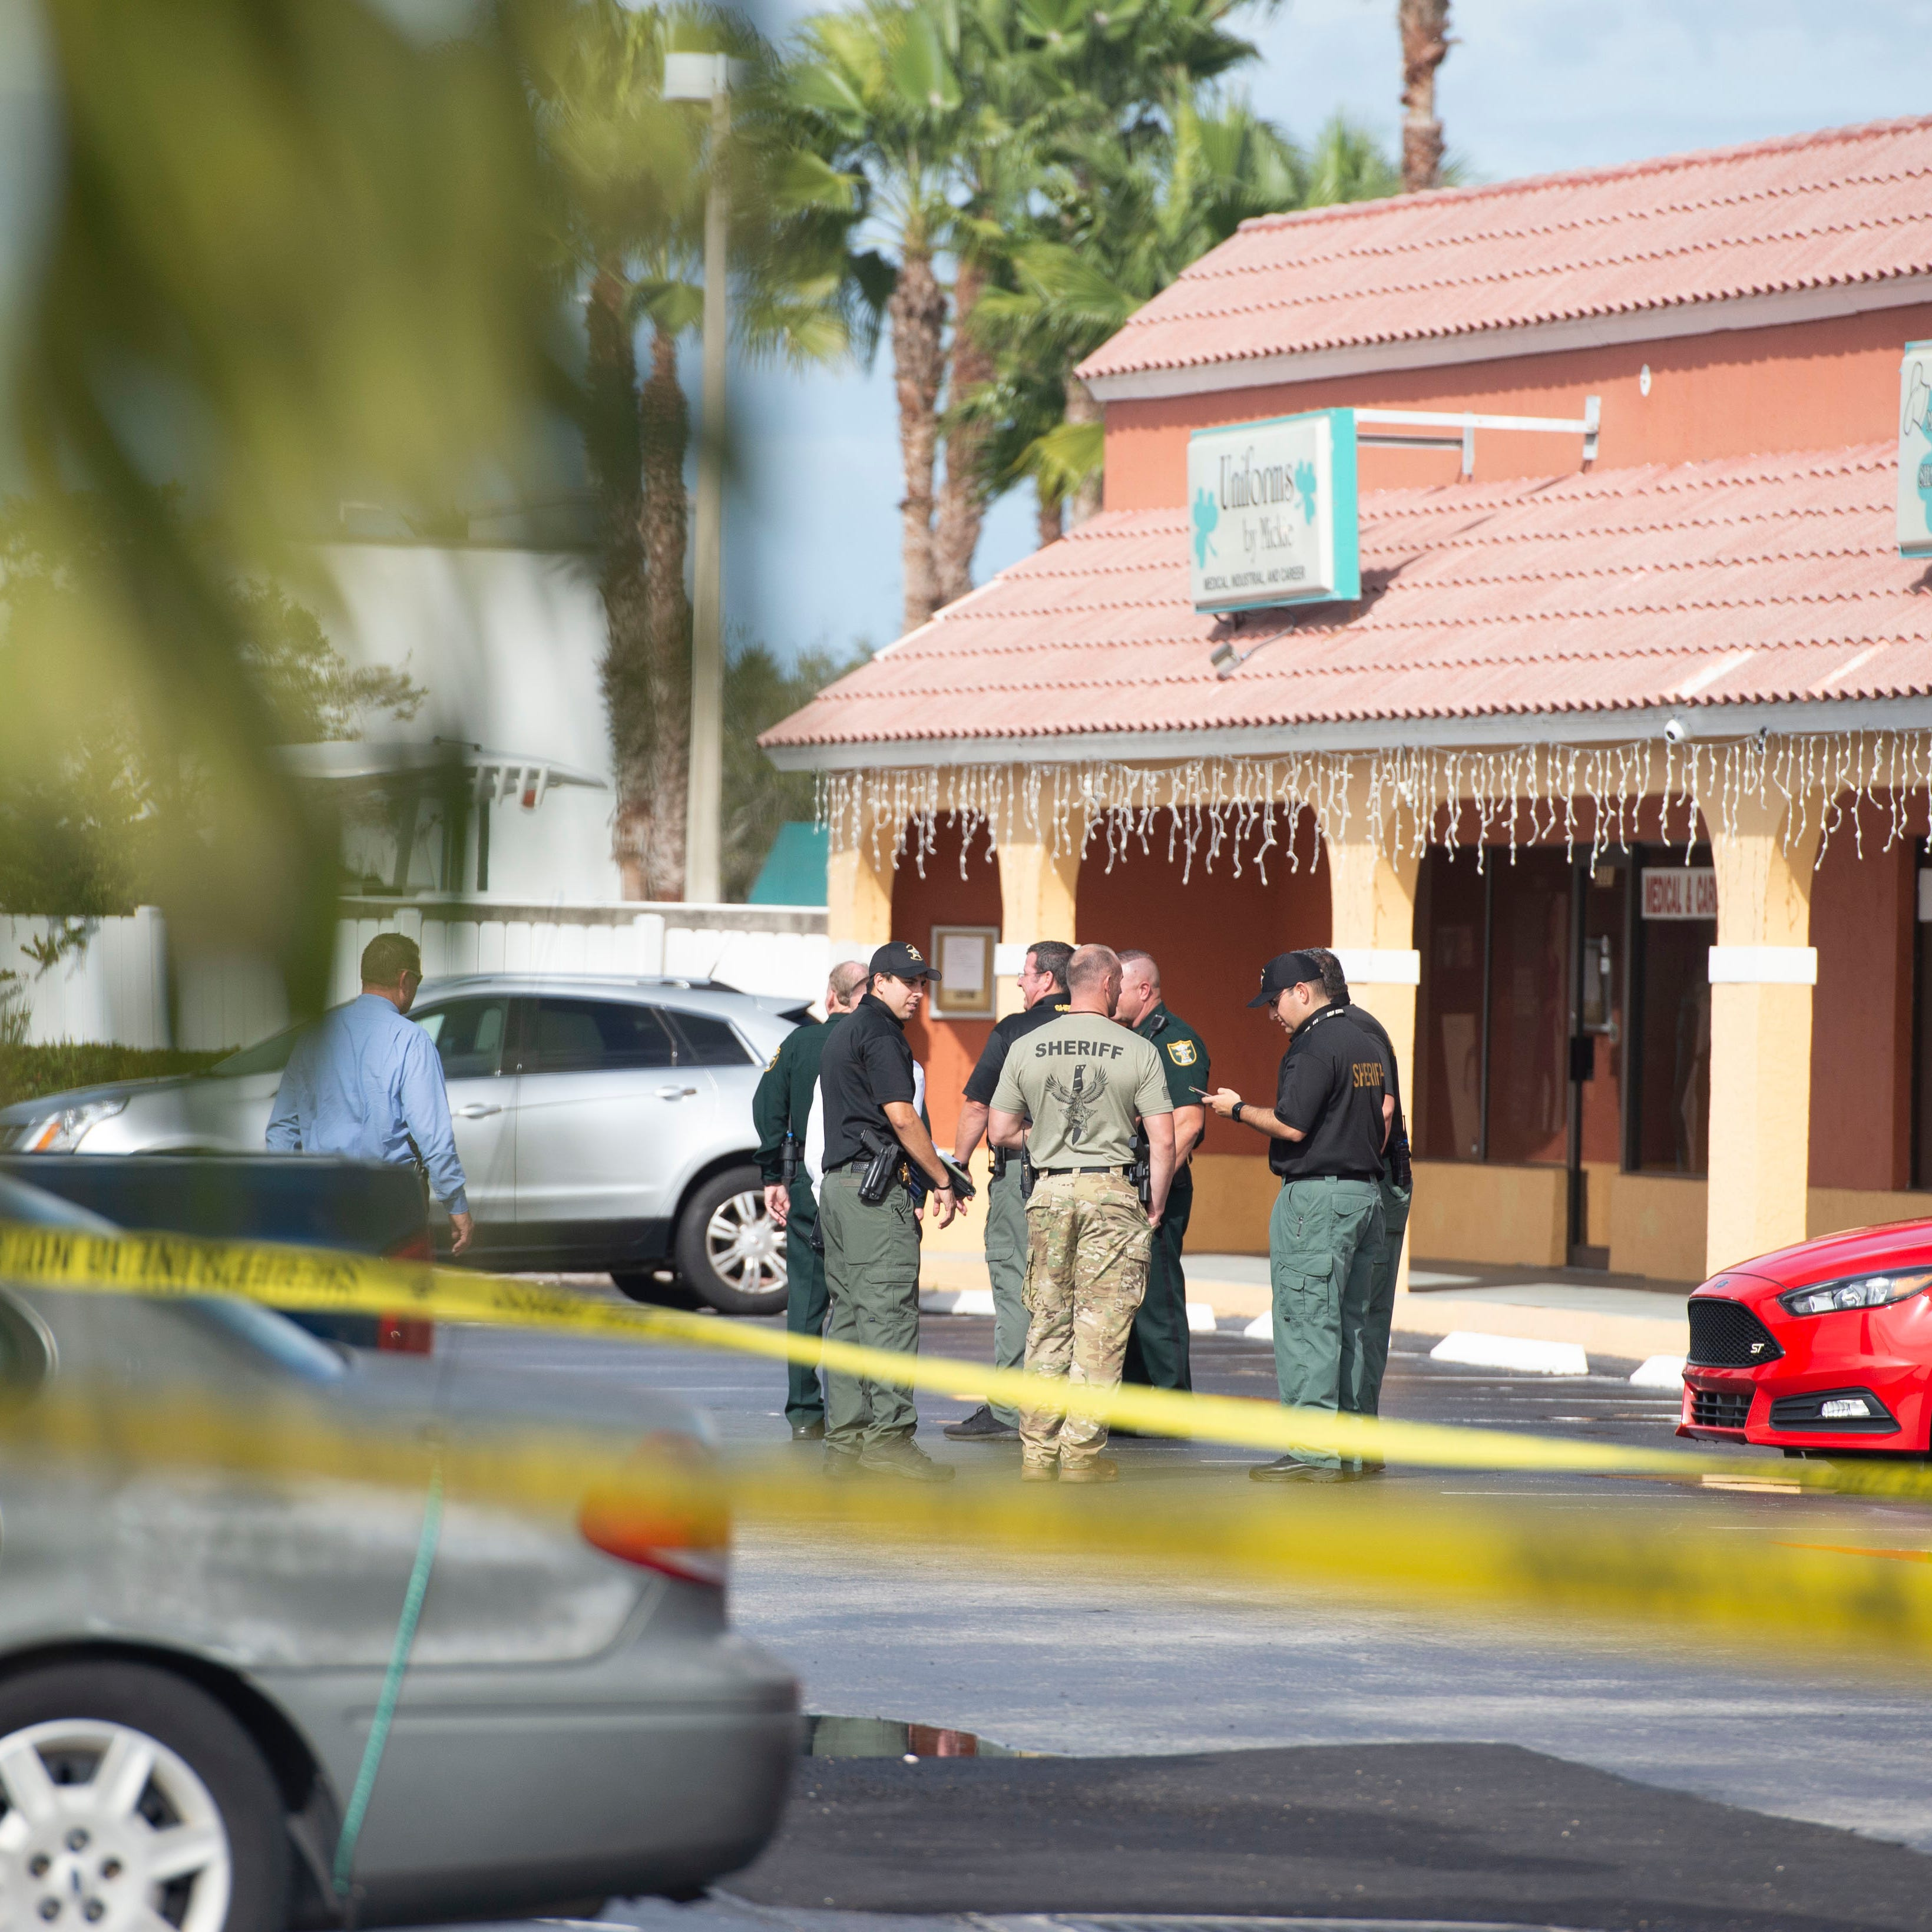 Jewelry store robbery: Will owner or getaway car driver be charged in teen's shooting?